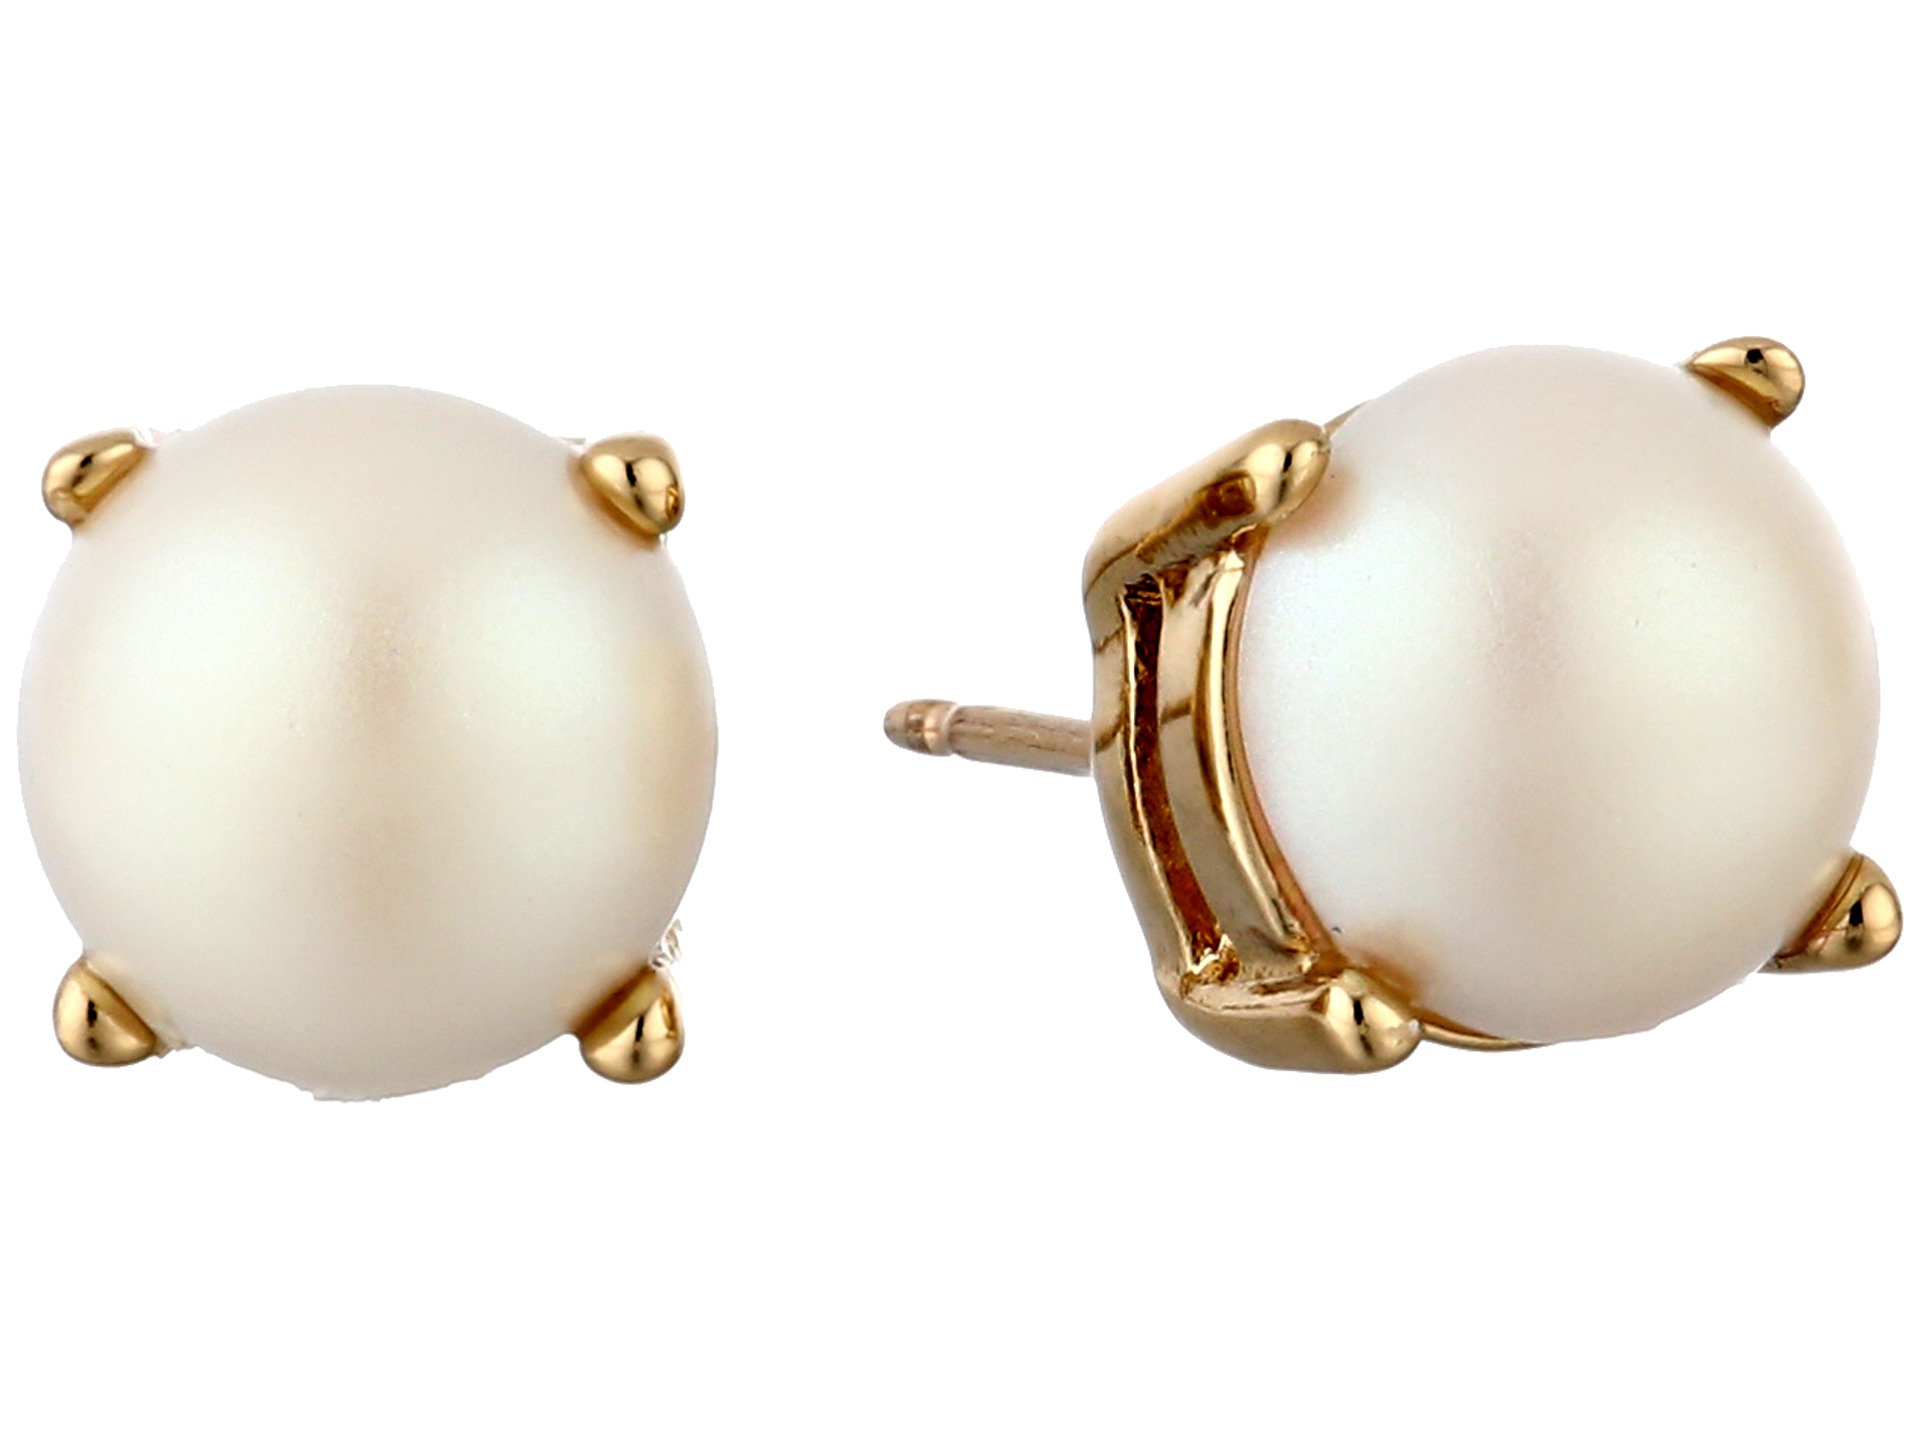 Kate spade new york Cueva Rosa Studs Earrings in White